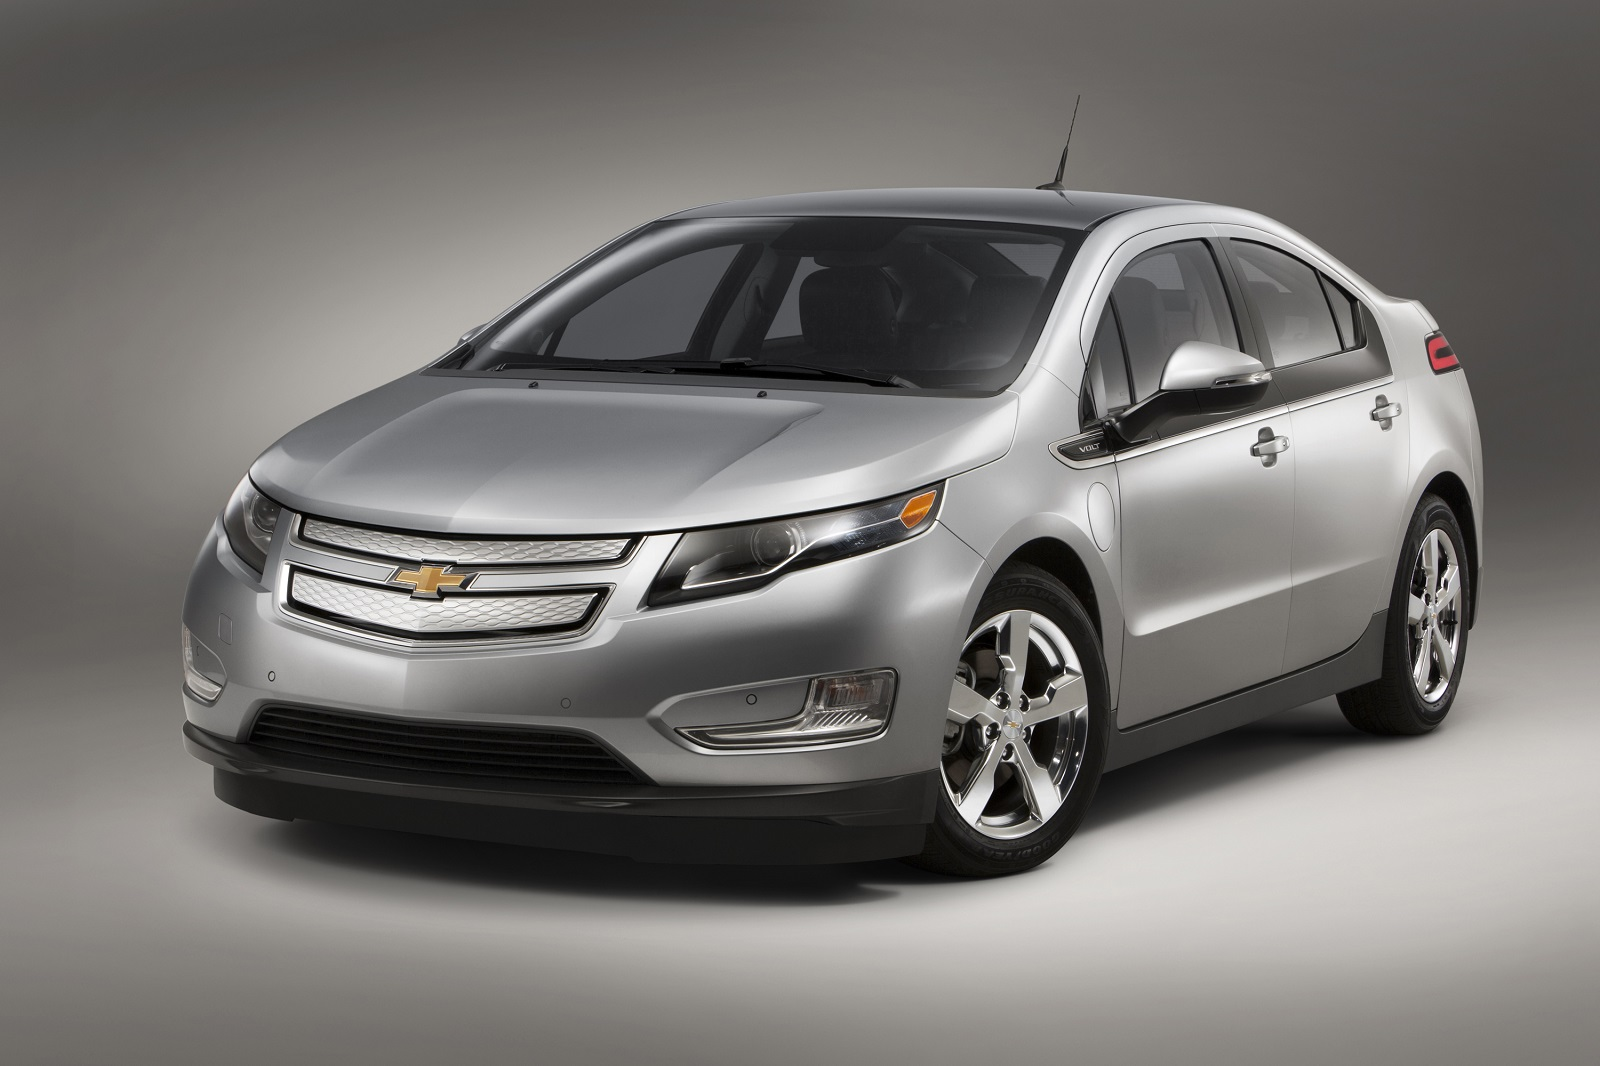 2015 chevrolet volt bigger battery but 38 mile electric range remains